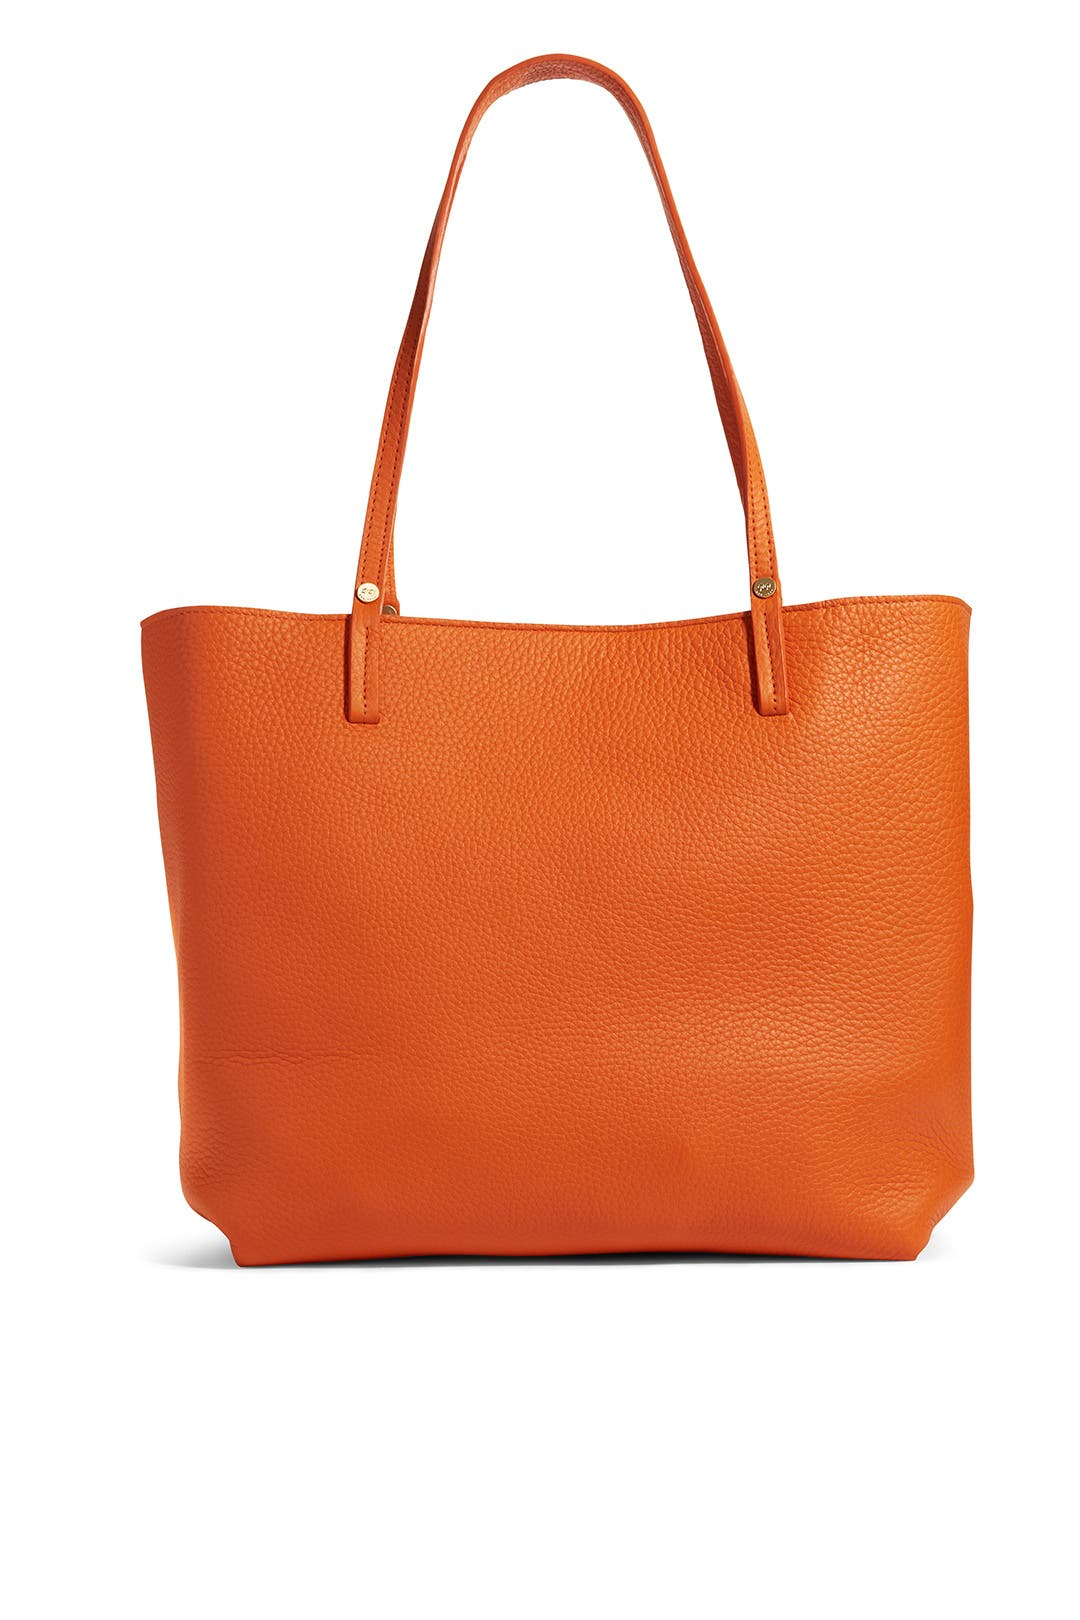 Tori Pebble Tote by Gigi New York